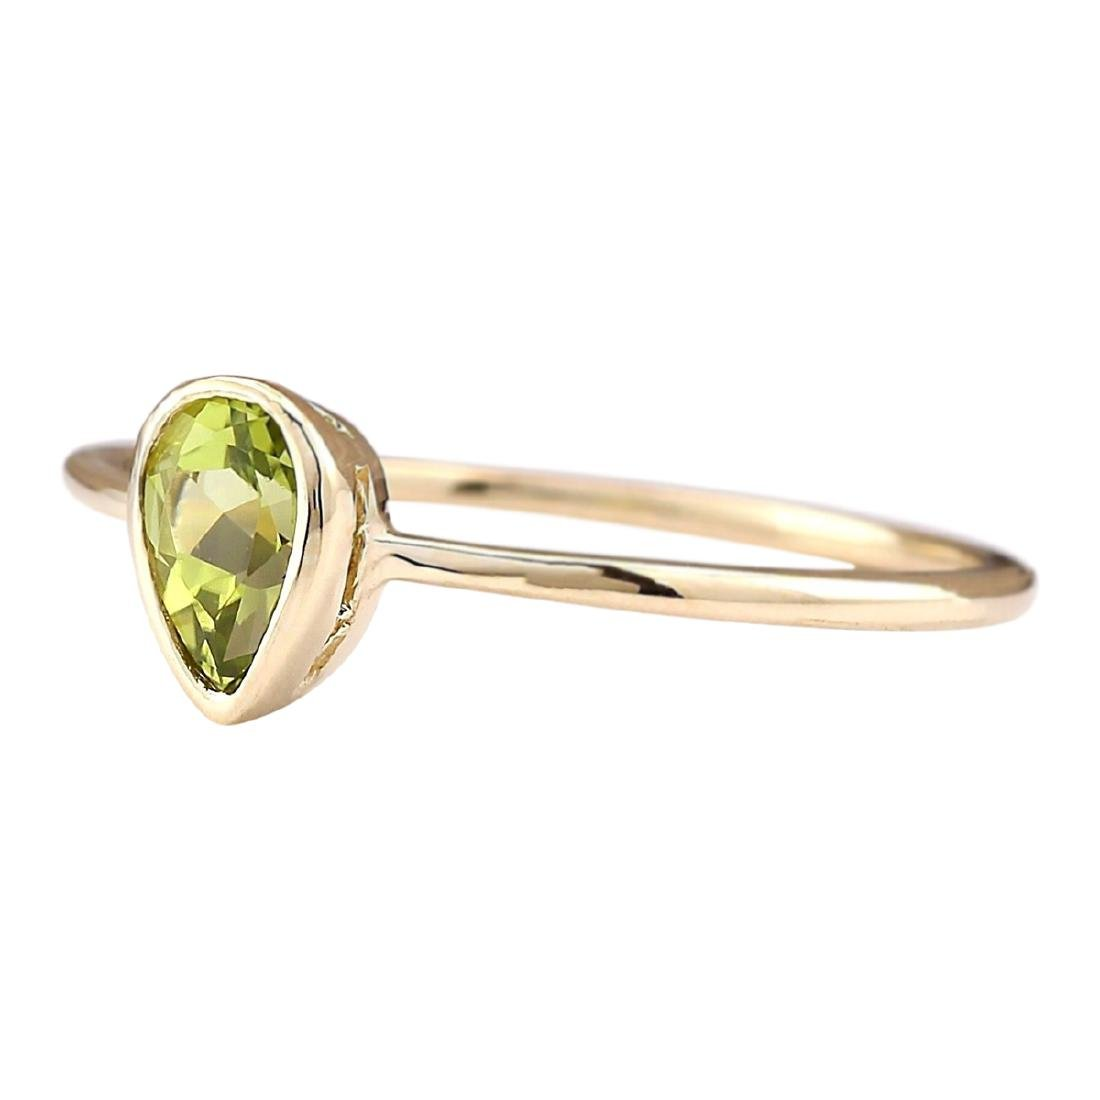 0.50 CTW Natural Peridot Ring In 18K Yellow Gold - 2